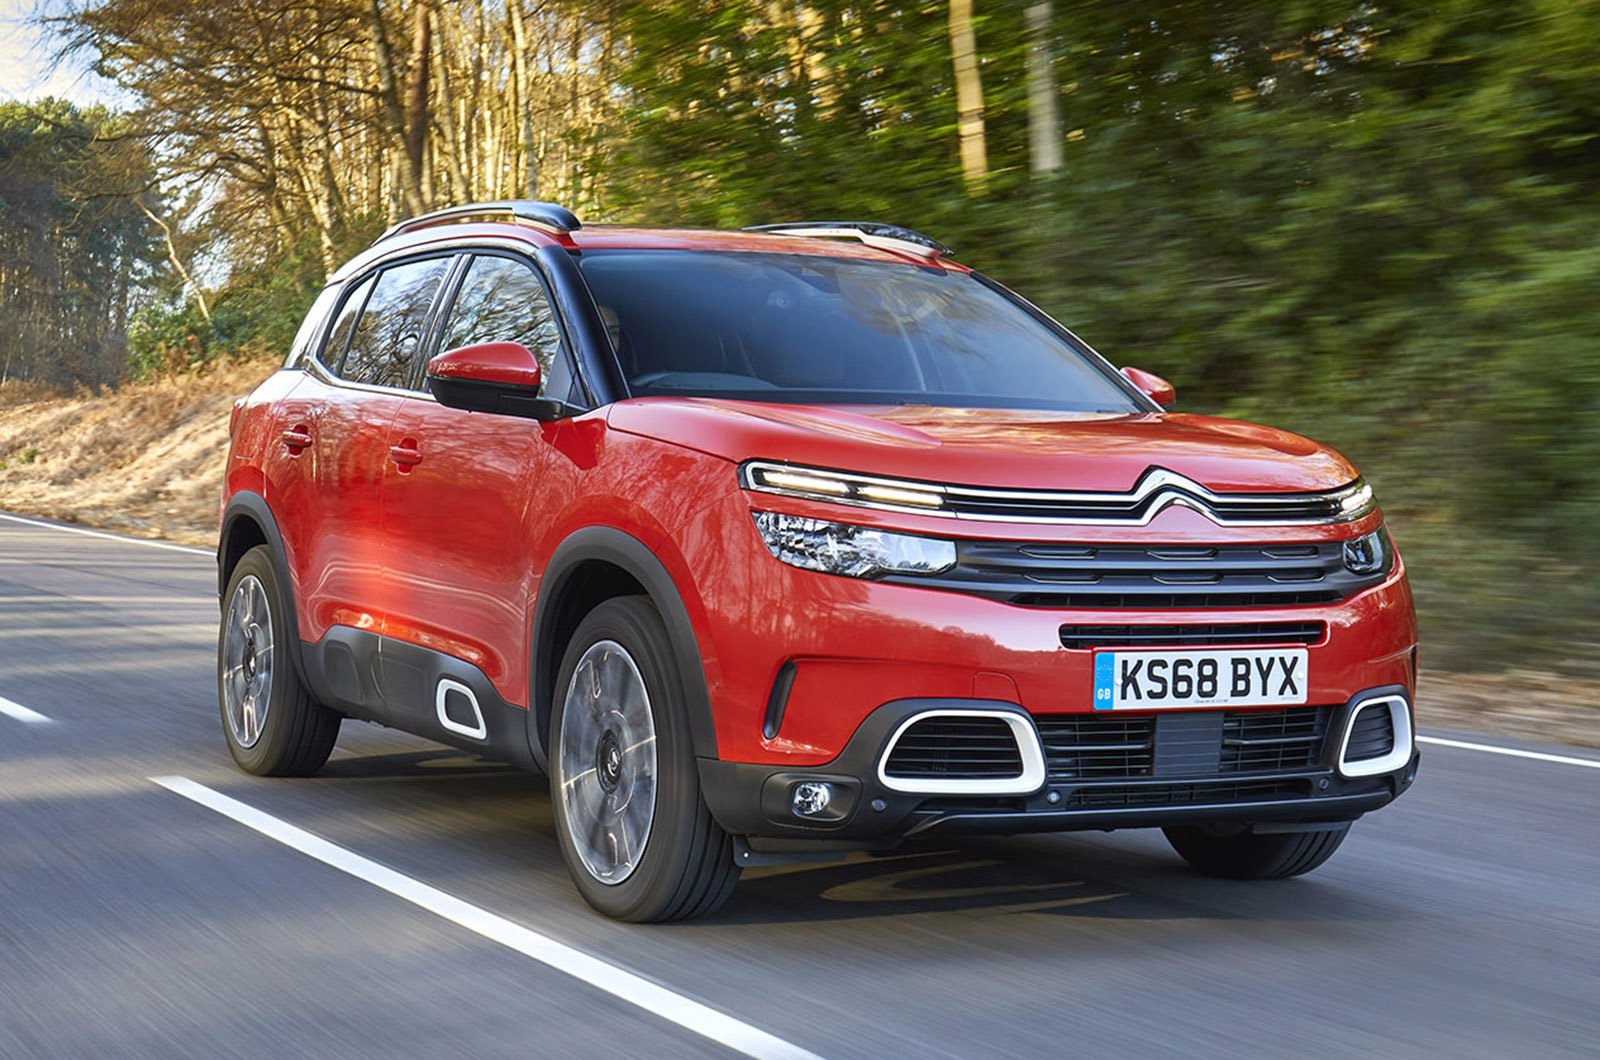 2019 Citroen C5 Aircross Puretech 130 Review Price Specs And